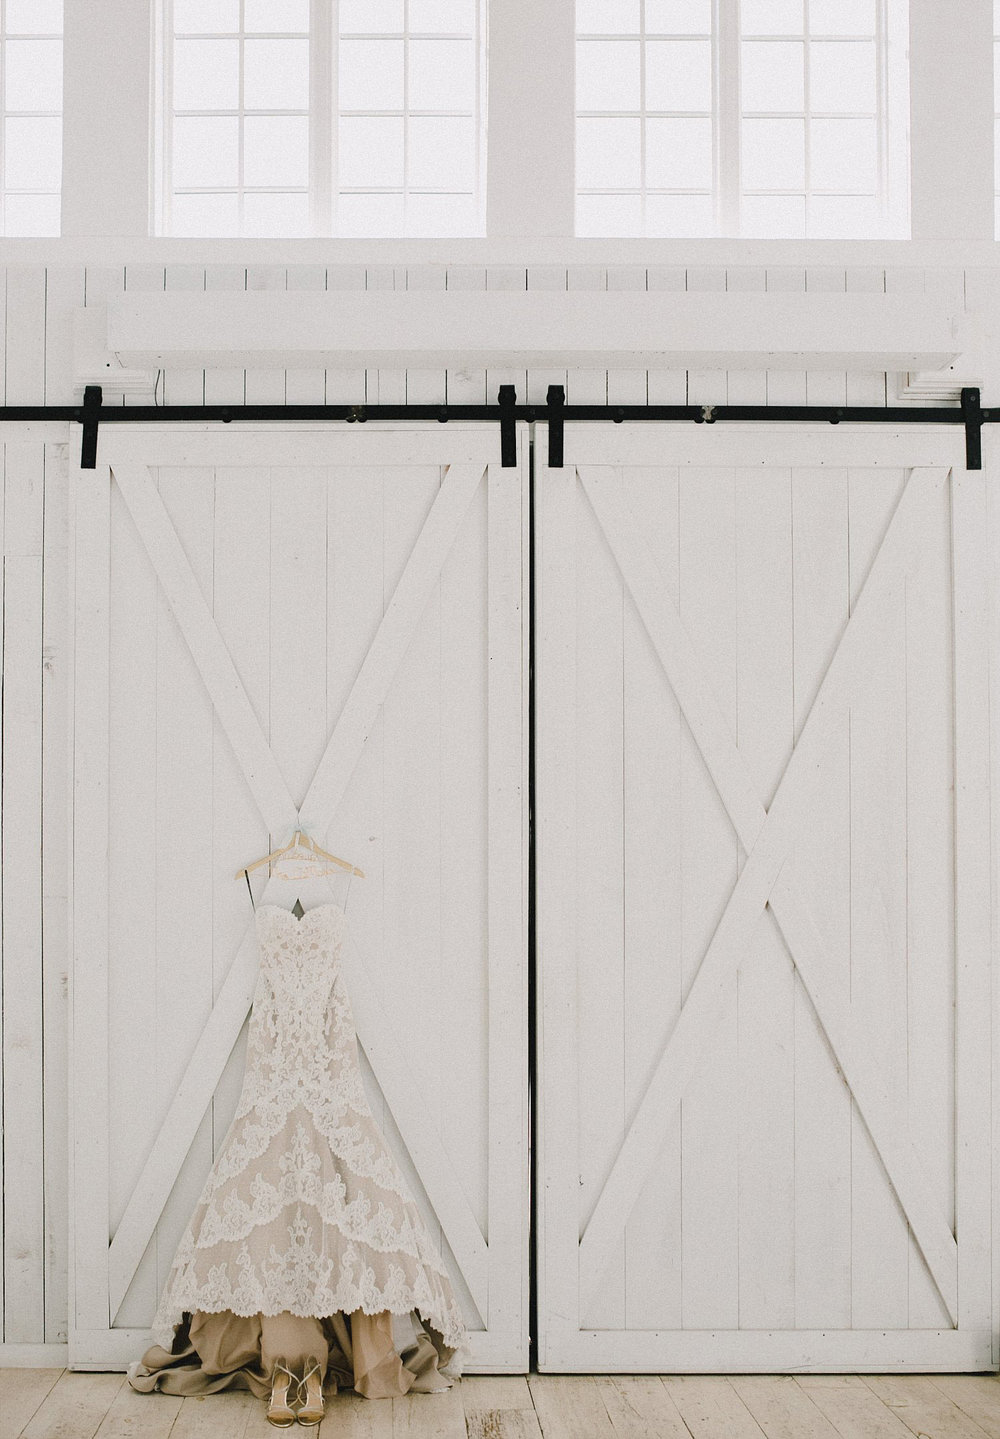 White Sparrow Barn wedding dress hanging on white barn doors with windows above